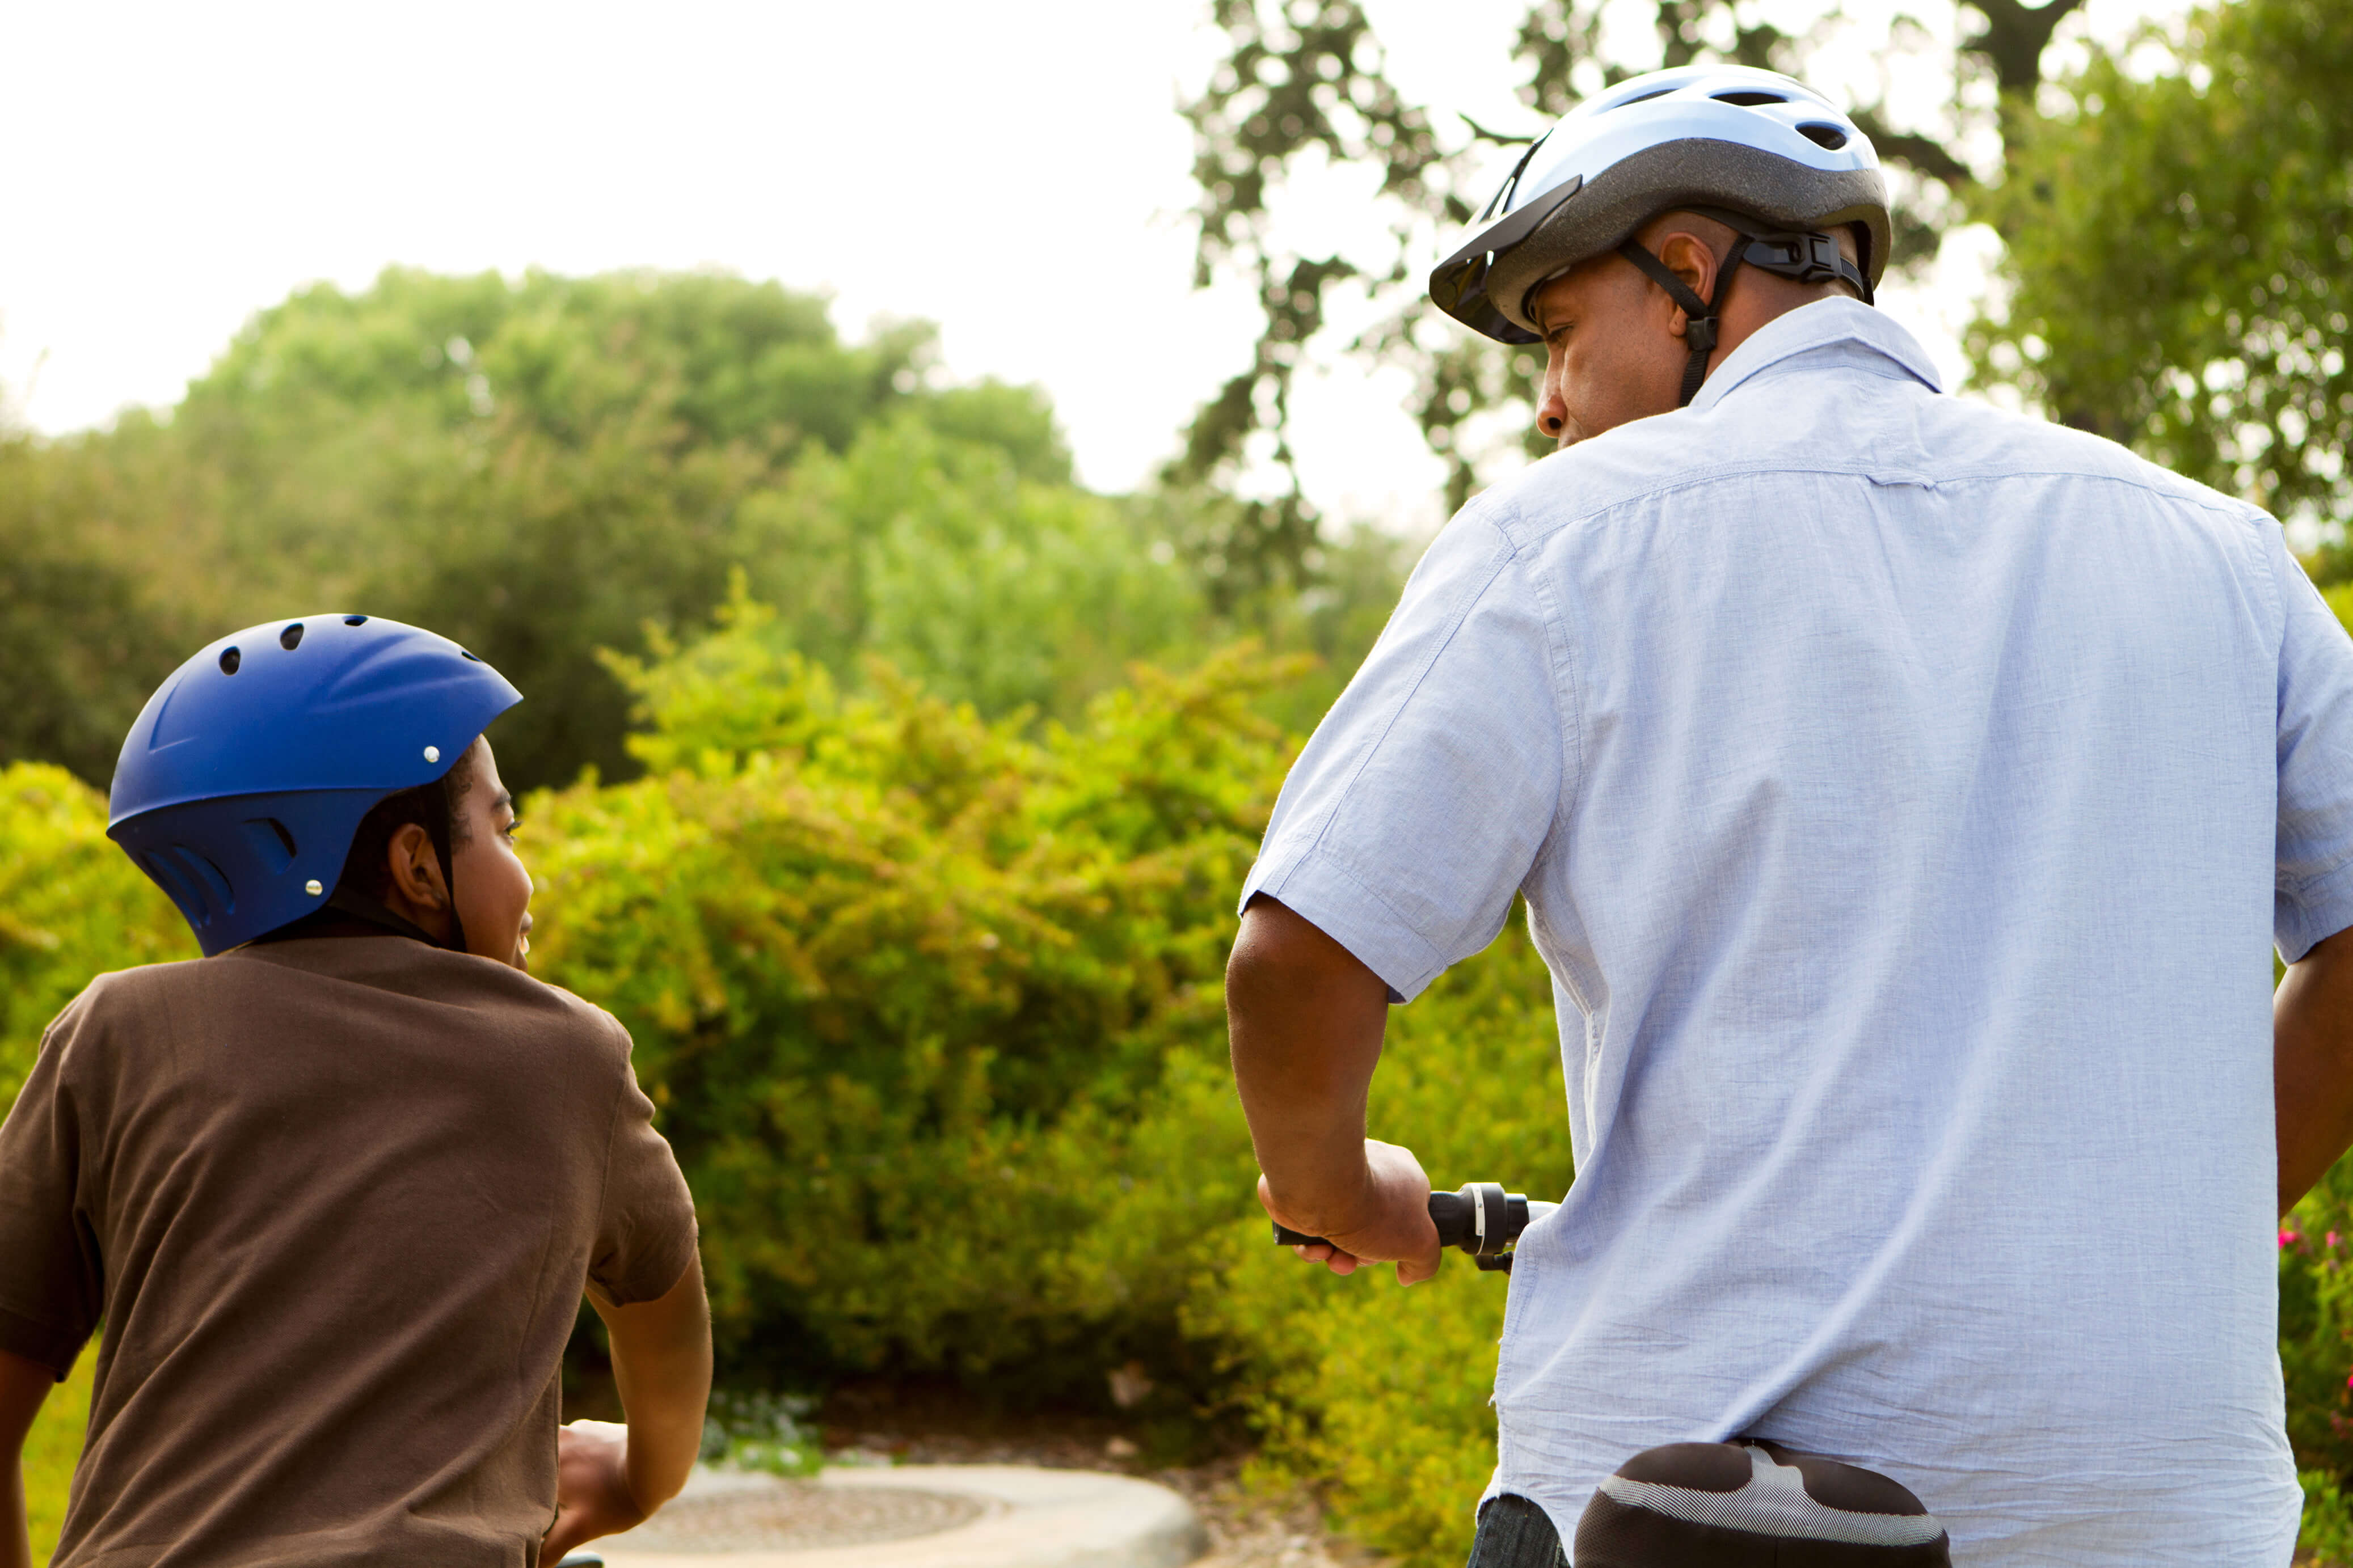 Father and Son enjoying a bike ride on the Caledon Wetland Trails, Ontario